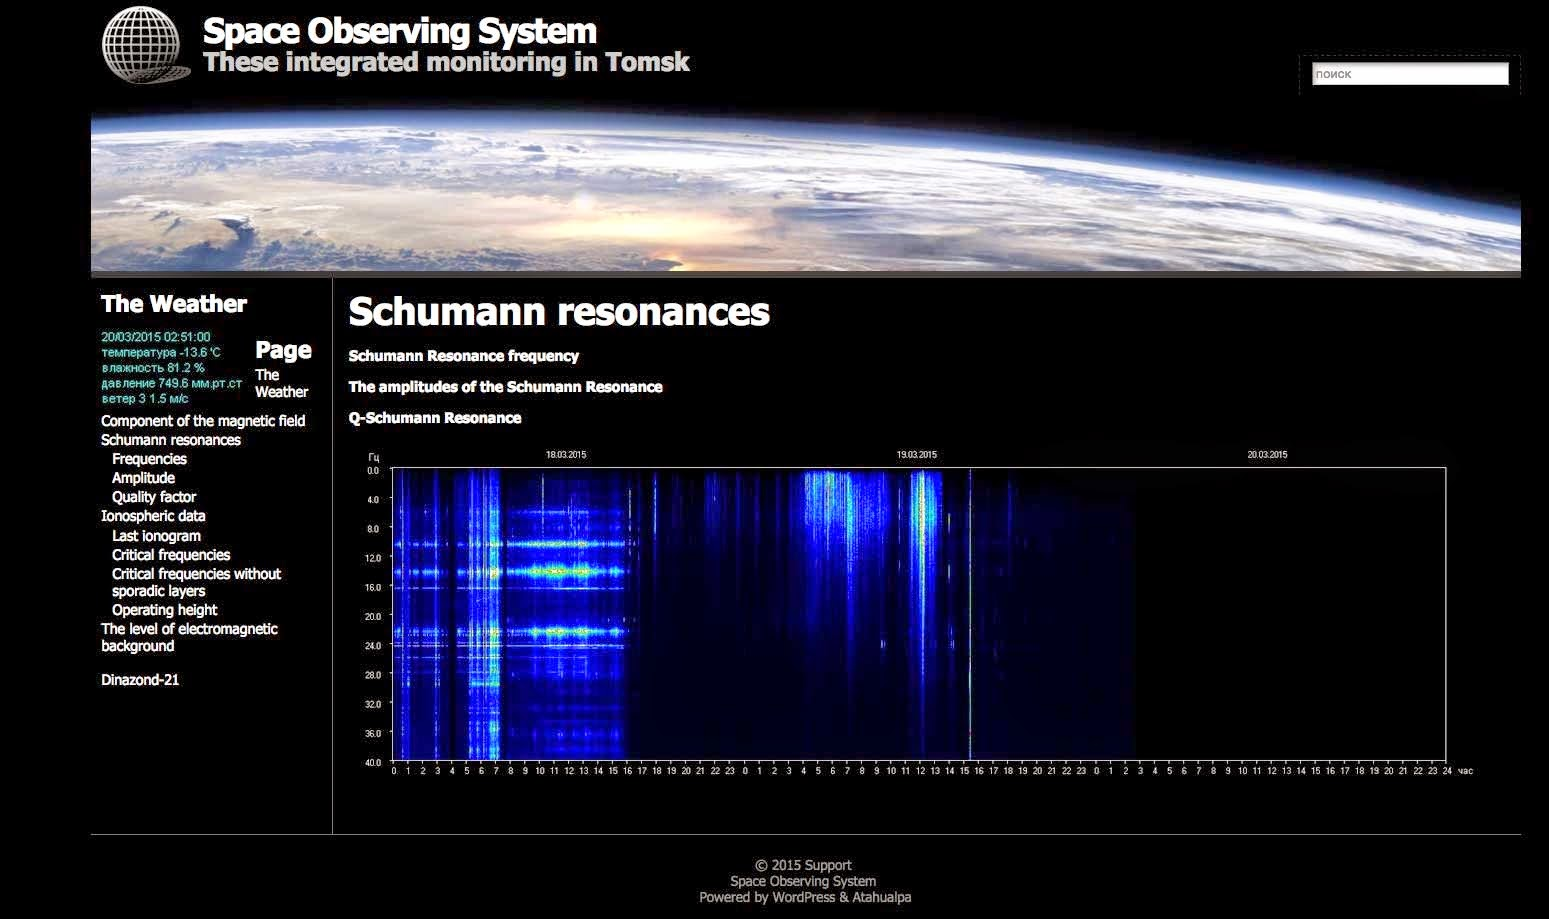 https://i2.wp.com/www.soundsofsirius.com/wp-content/uploads/2015/03/Schumann-resonance-18Mar2015.jpg